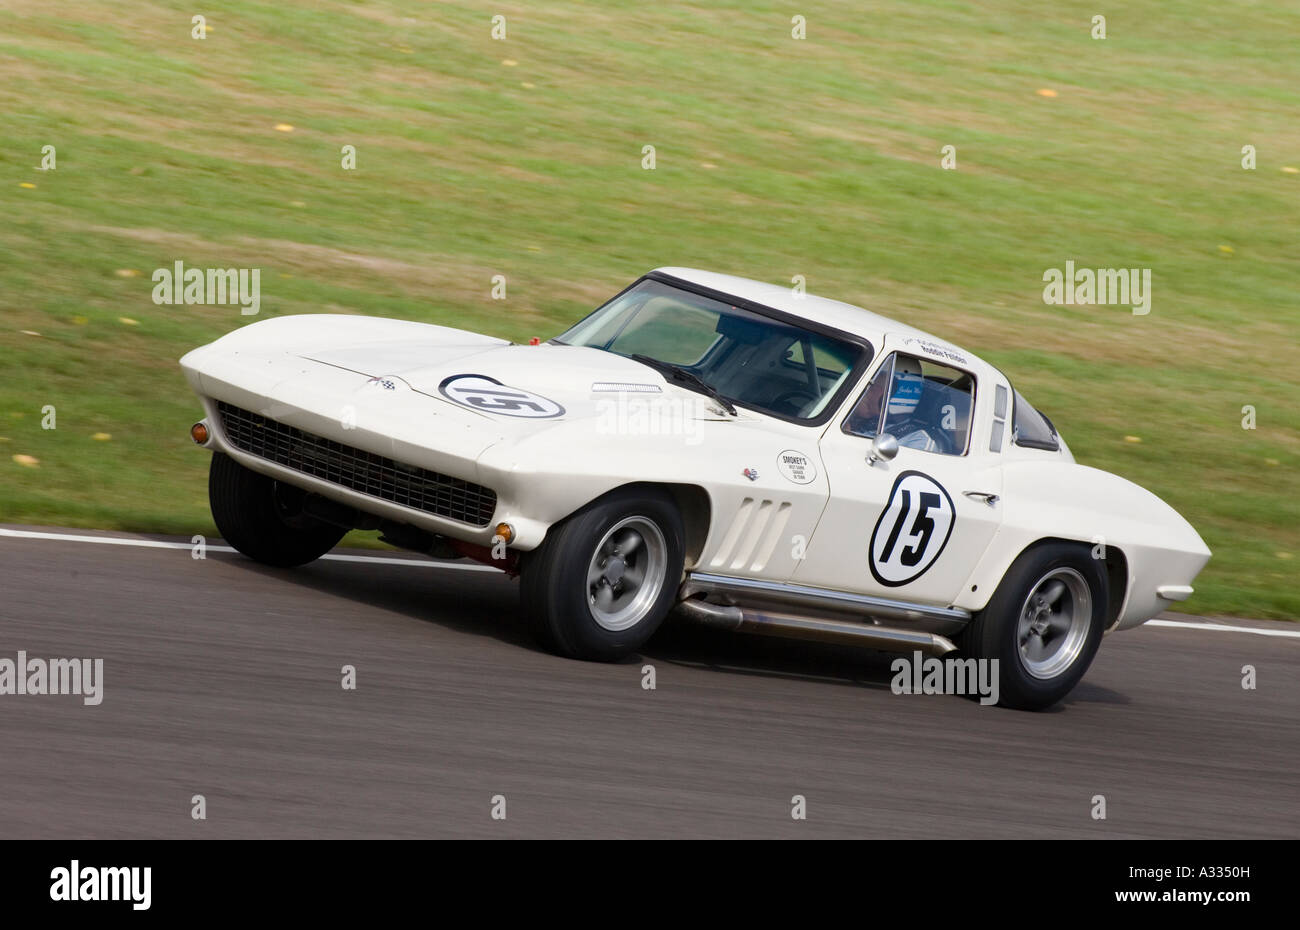 1965 Chevrolet Corvette Sting Ray during the Royal Automobile Club TT Celebration, Sussex, UK. - Stock Image